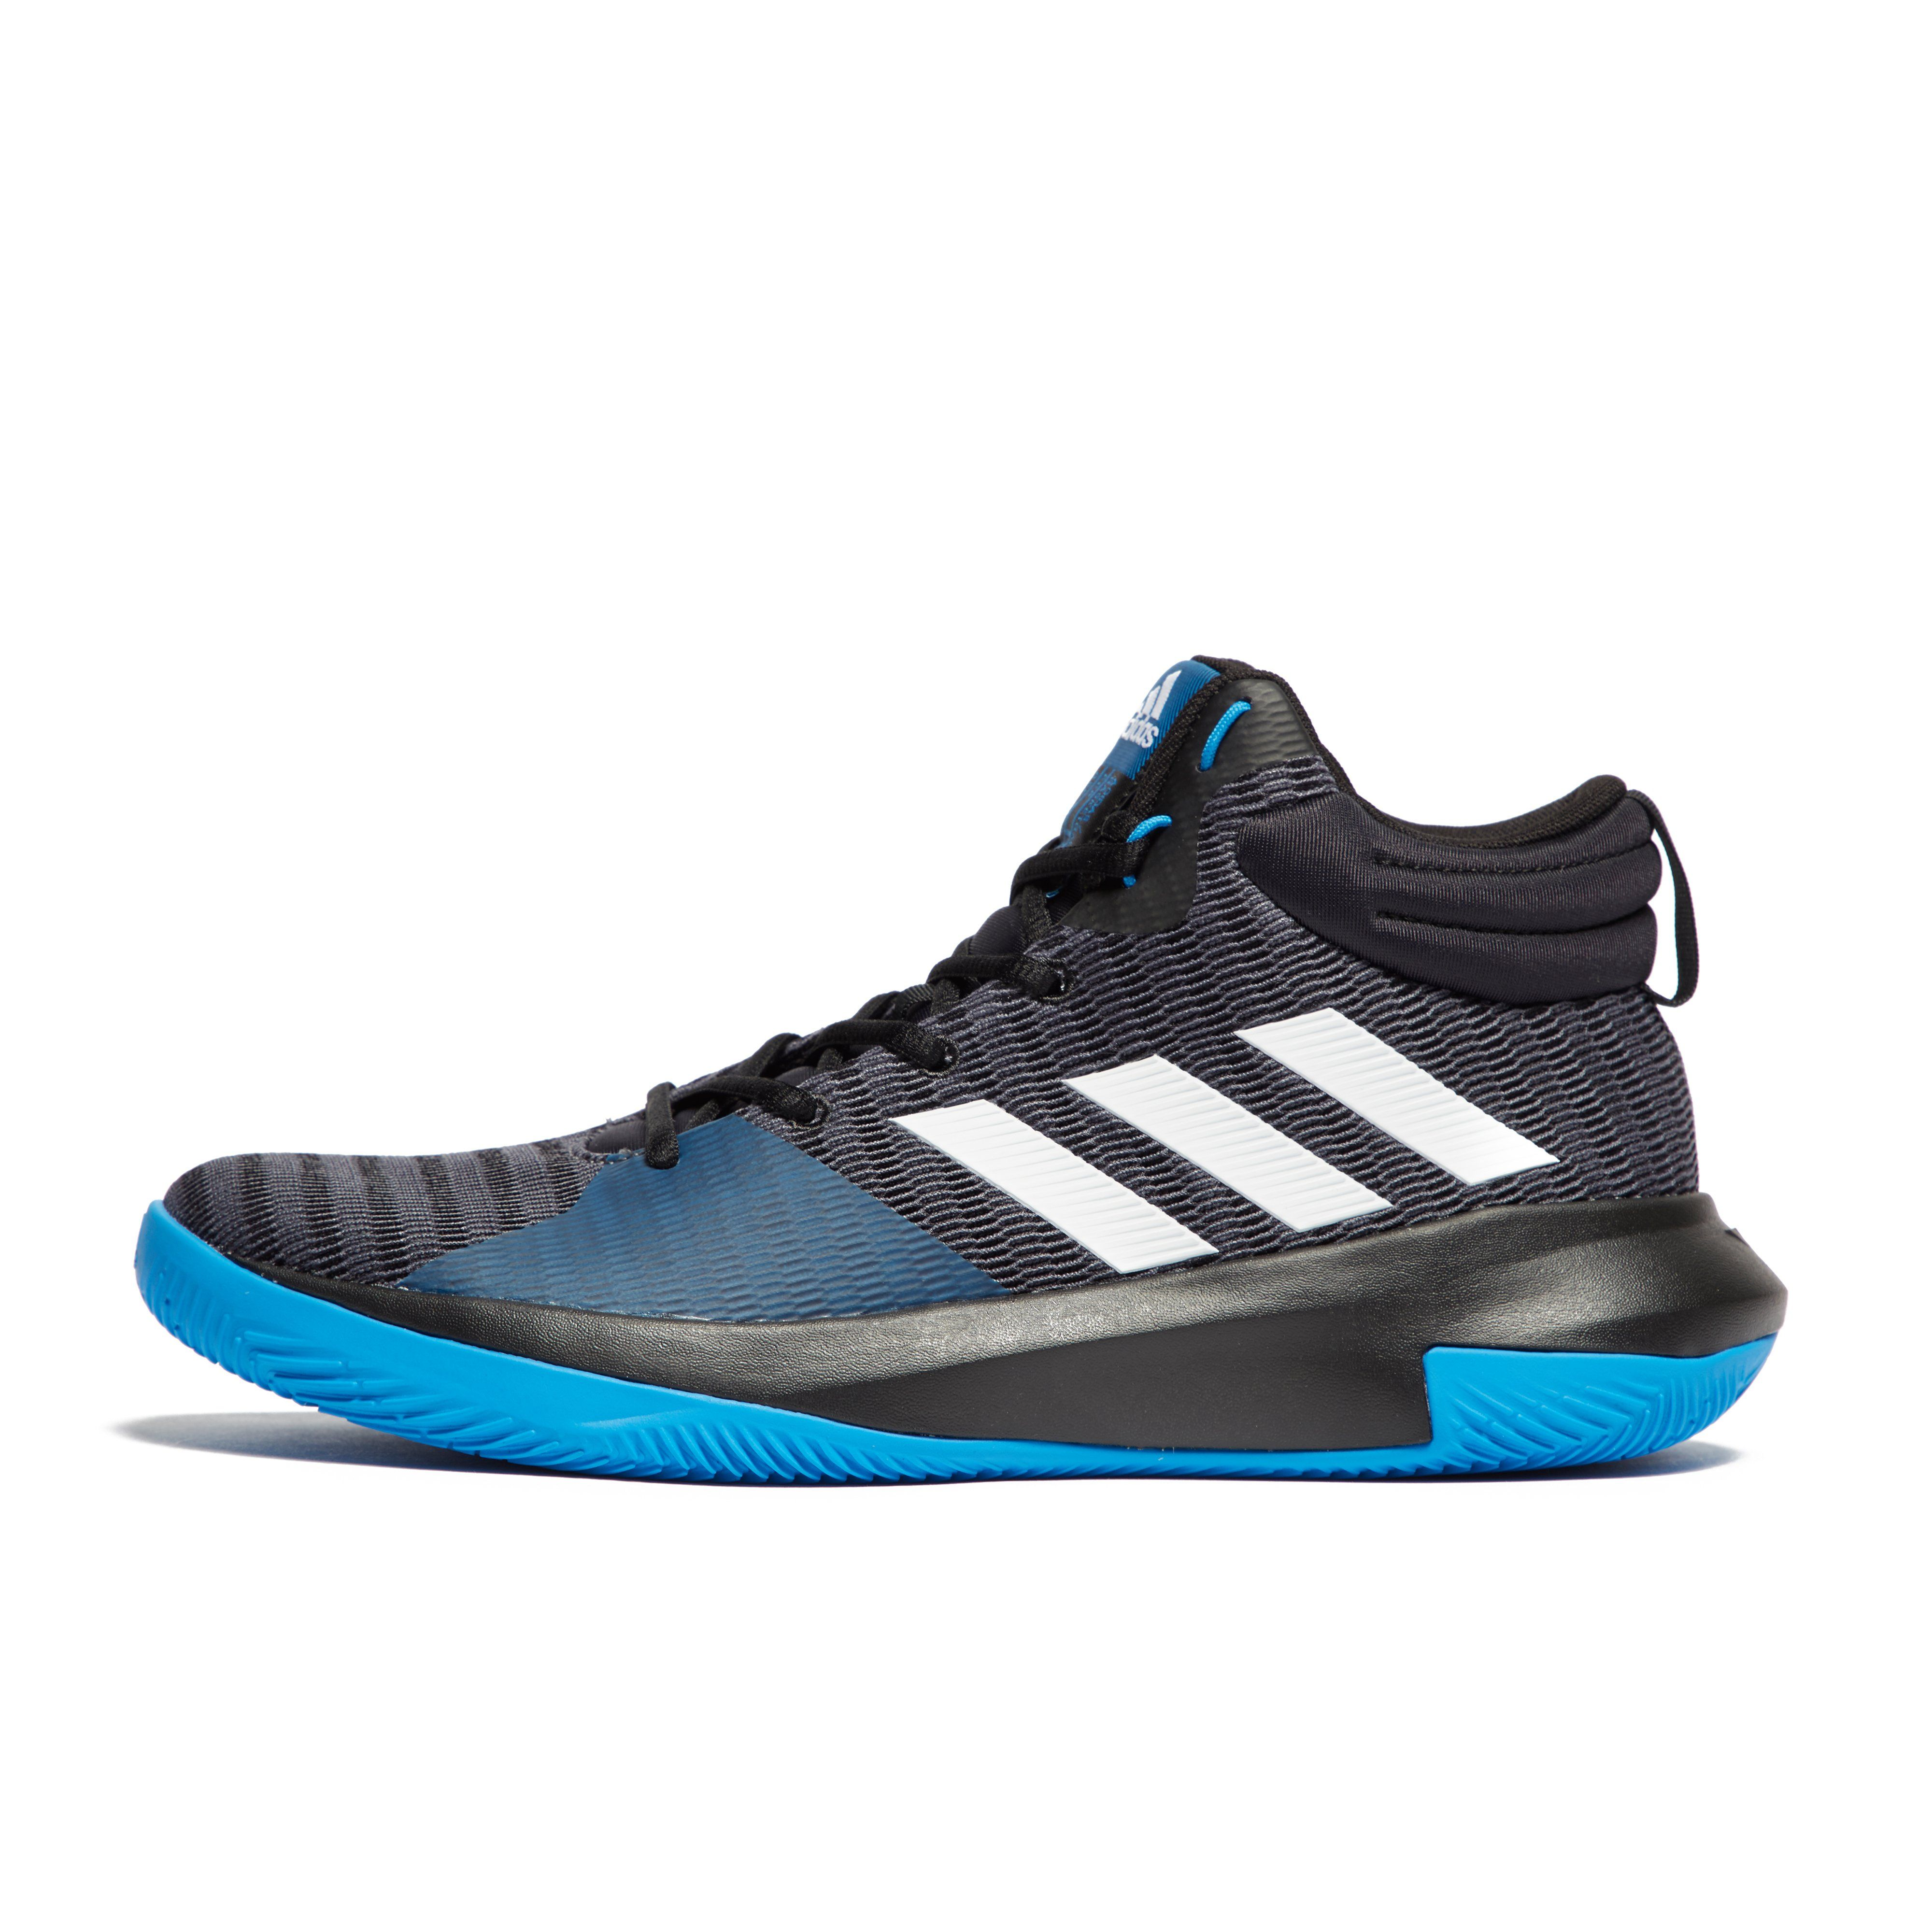 adidas Pro Elevate 2018 Men's Basketball Shoes